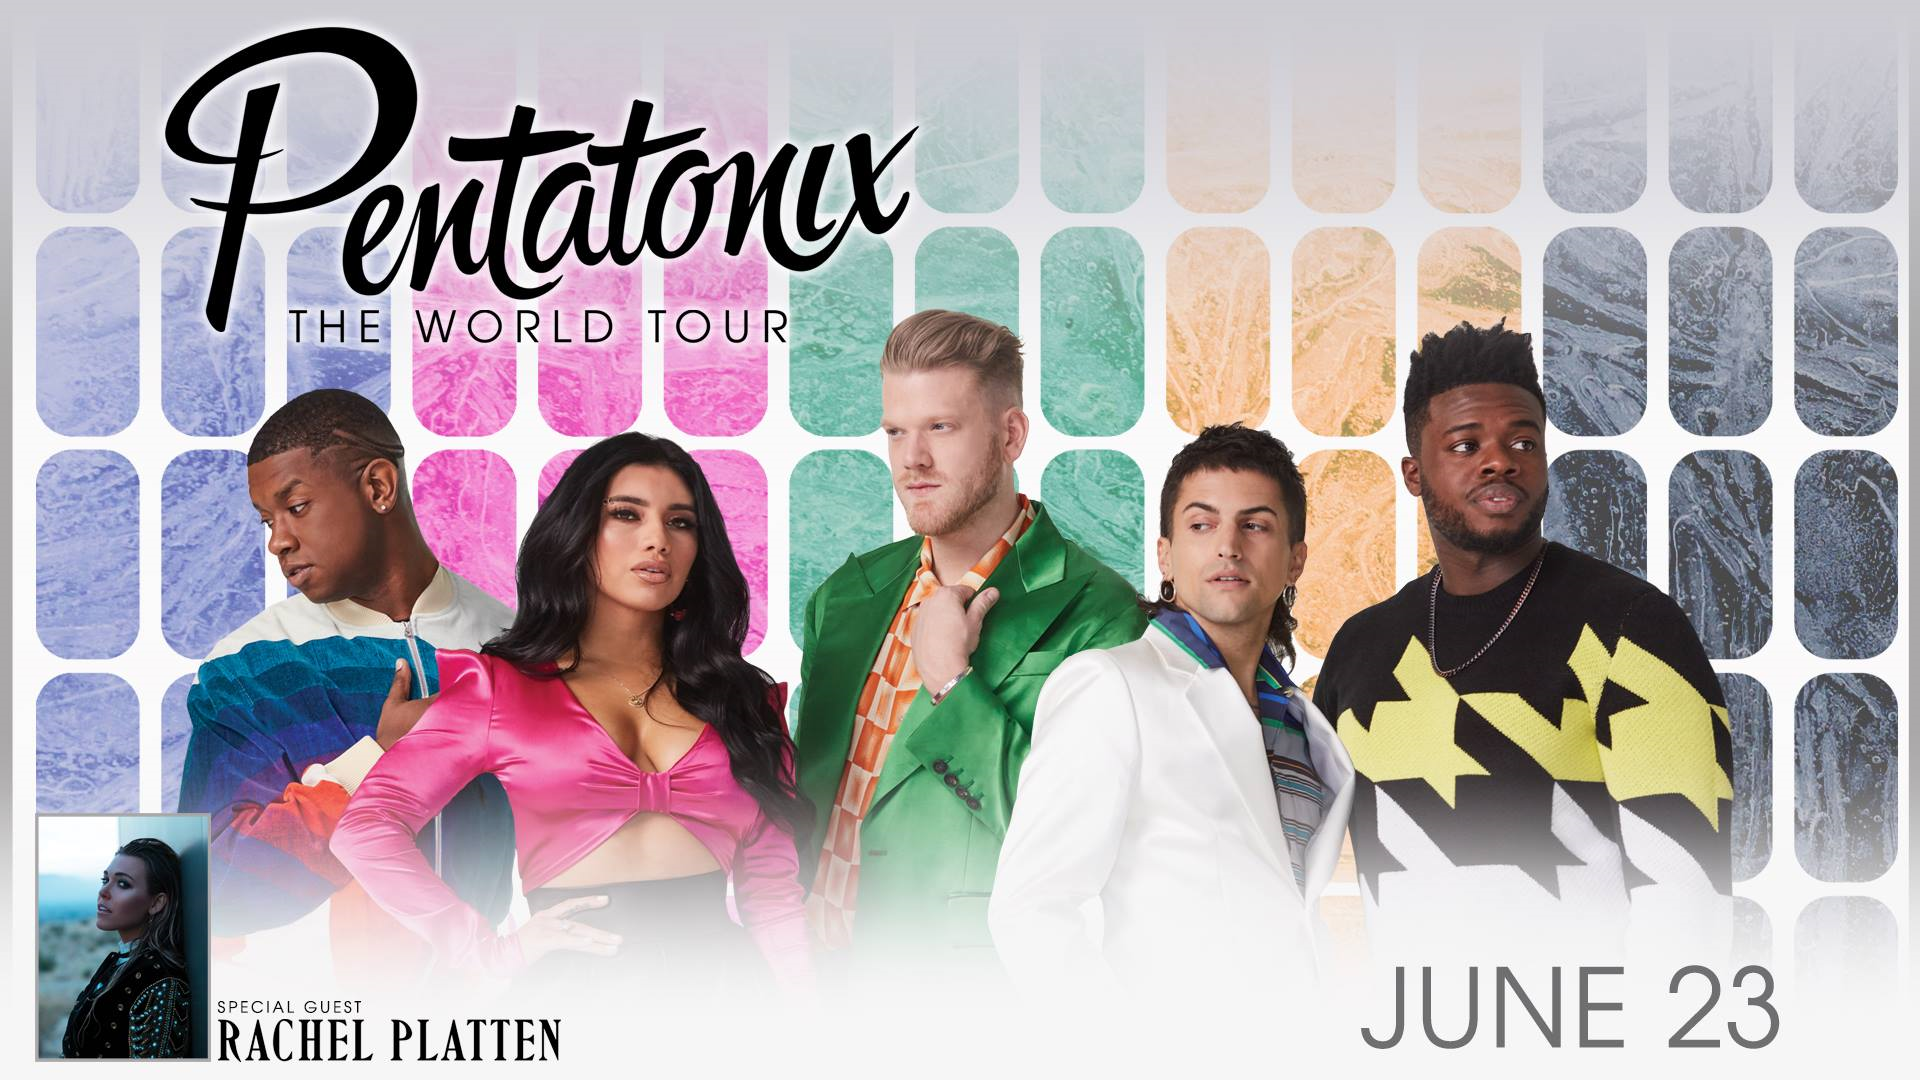 Pentatonix Live at the Resch June 23rd